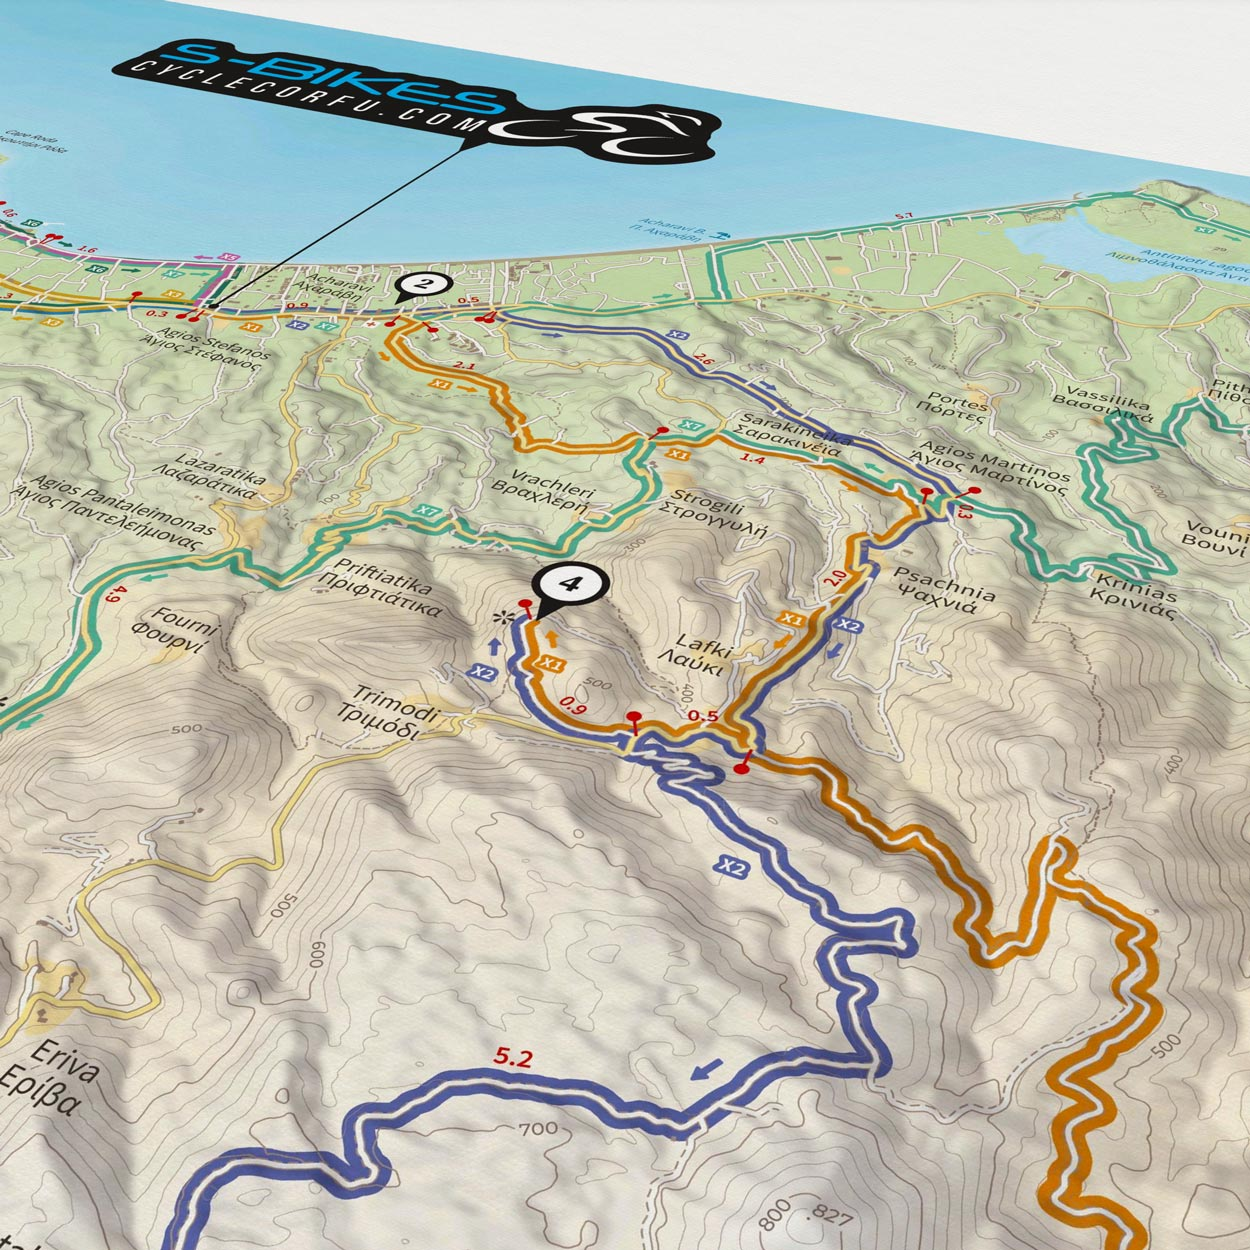 S-Bikes Cycle Corfu - Off Road Routes